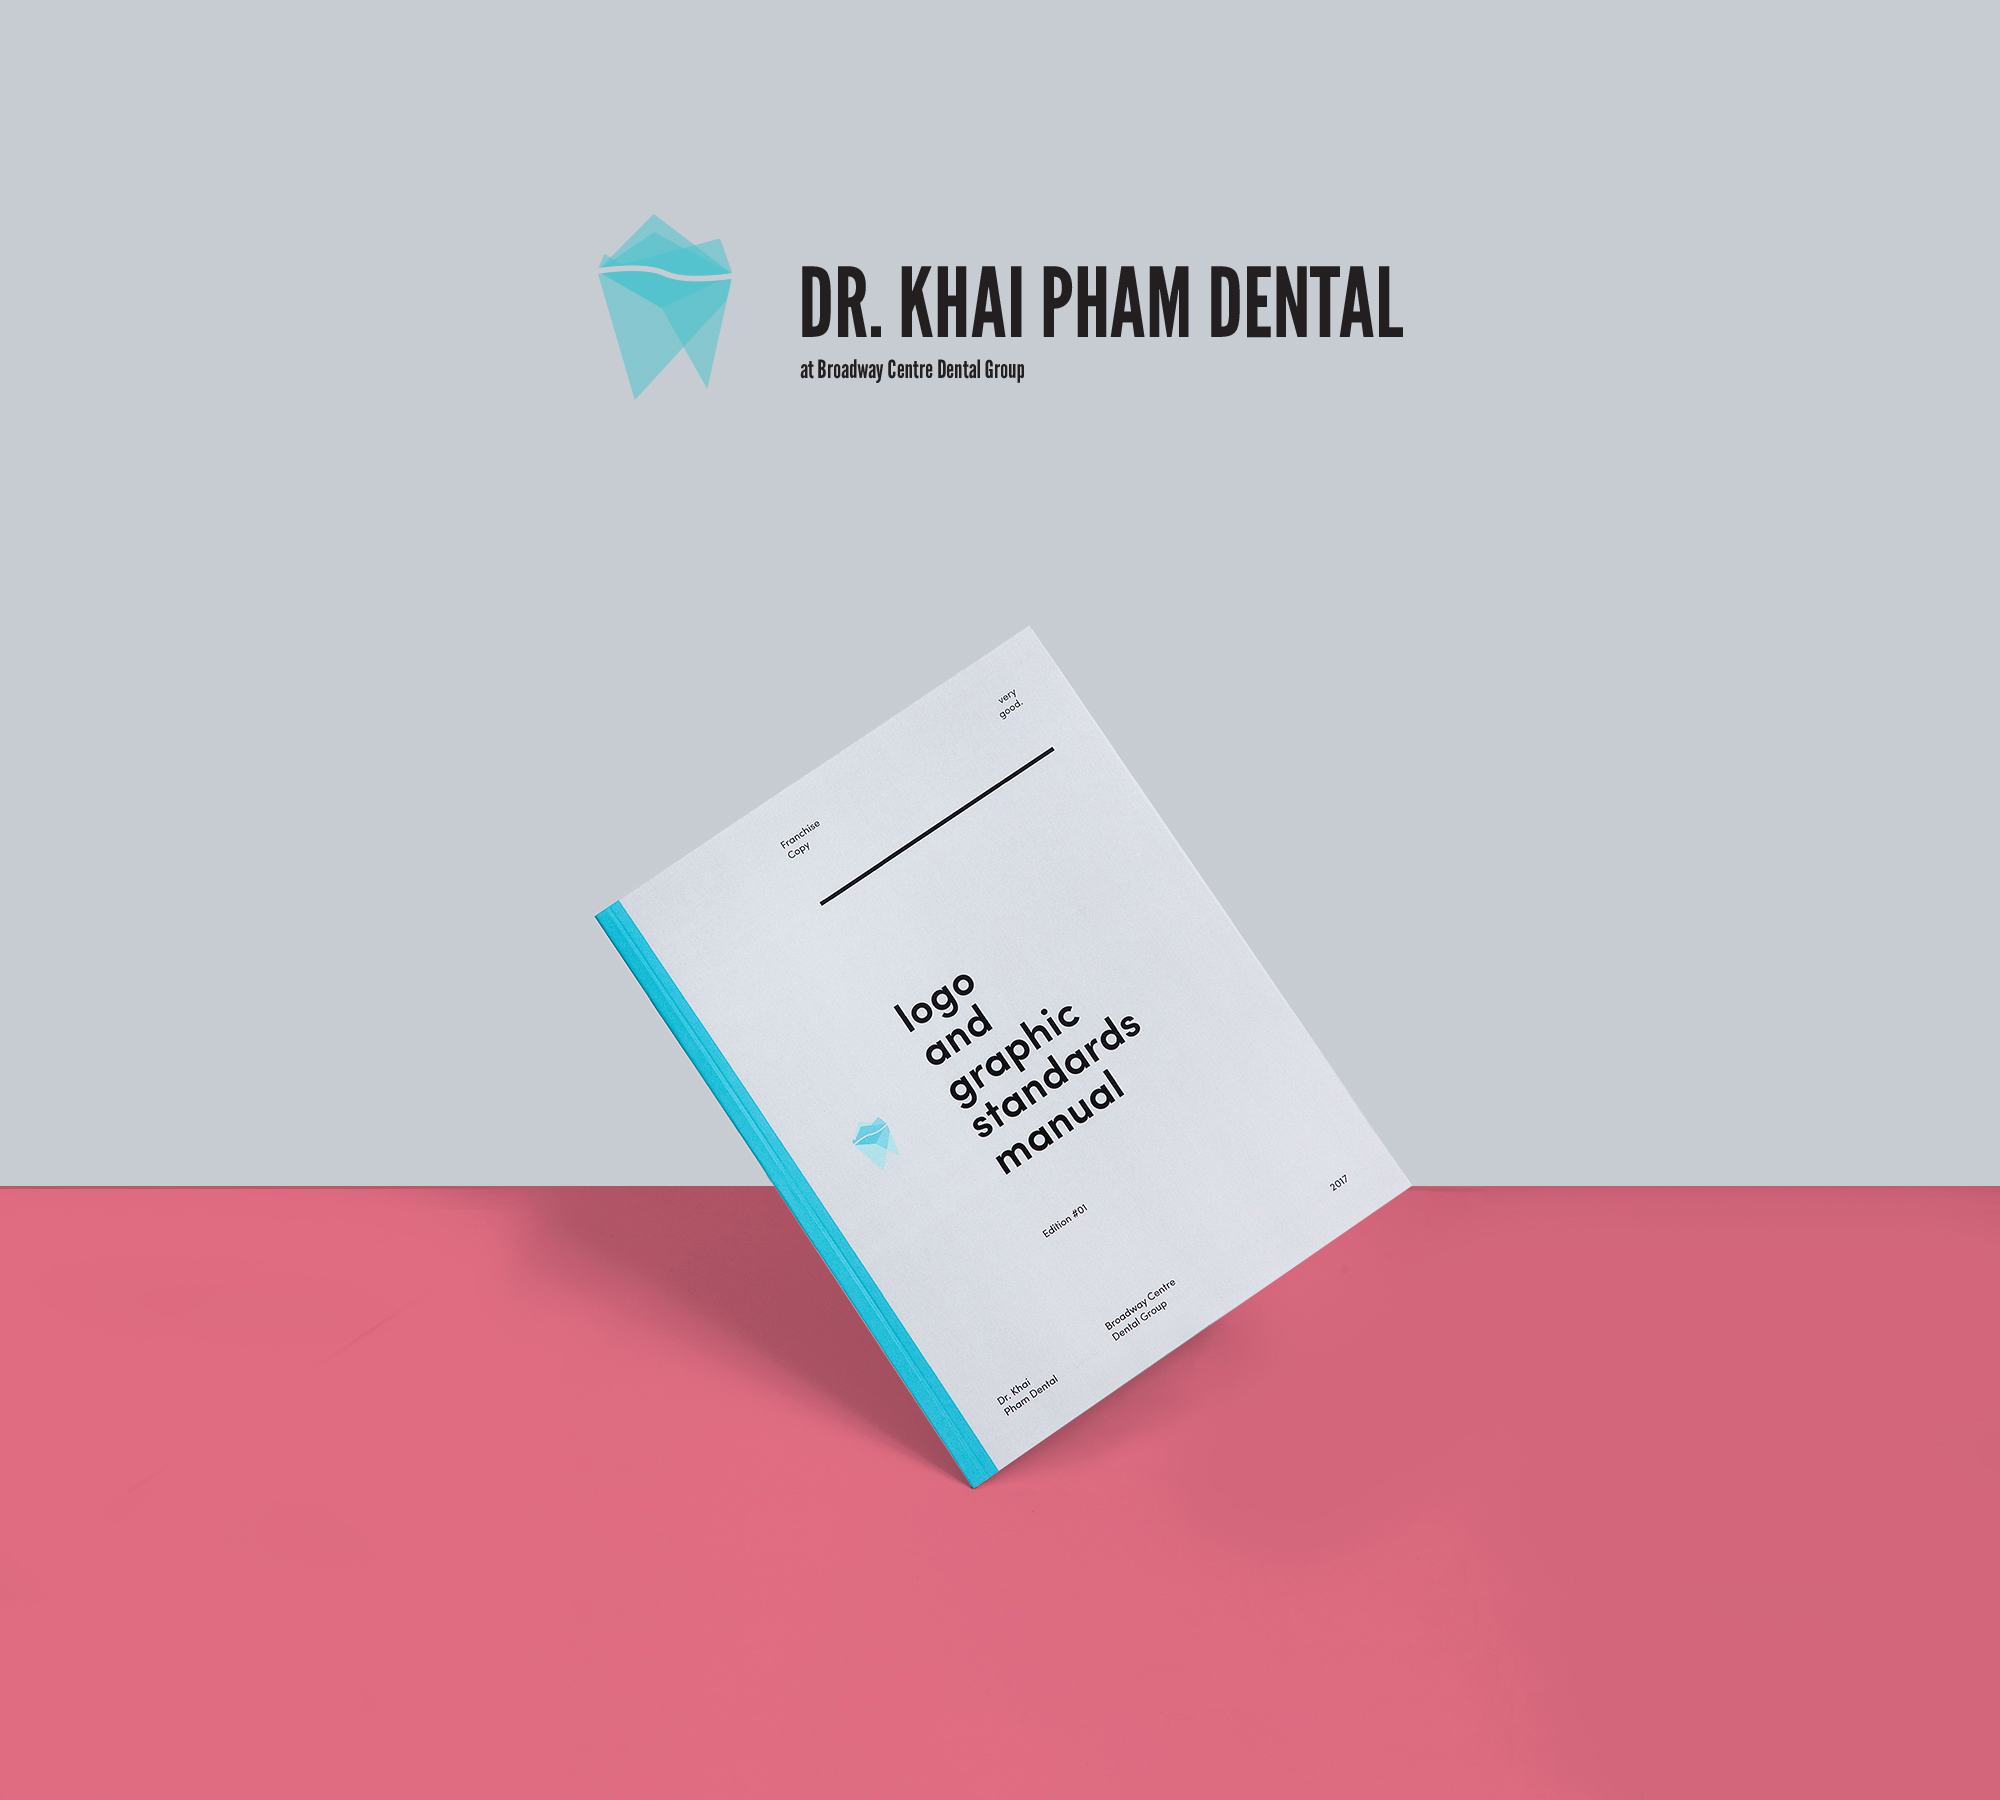 Dr. Khai Pham Dental - Market Research